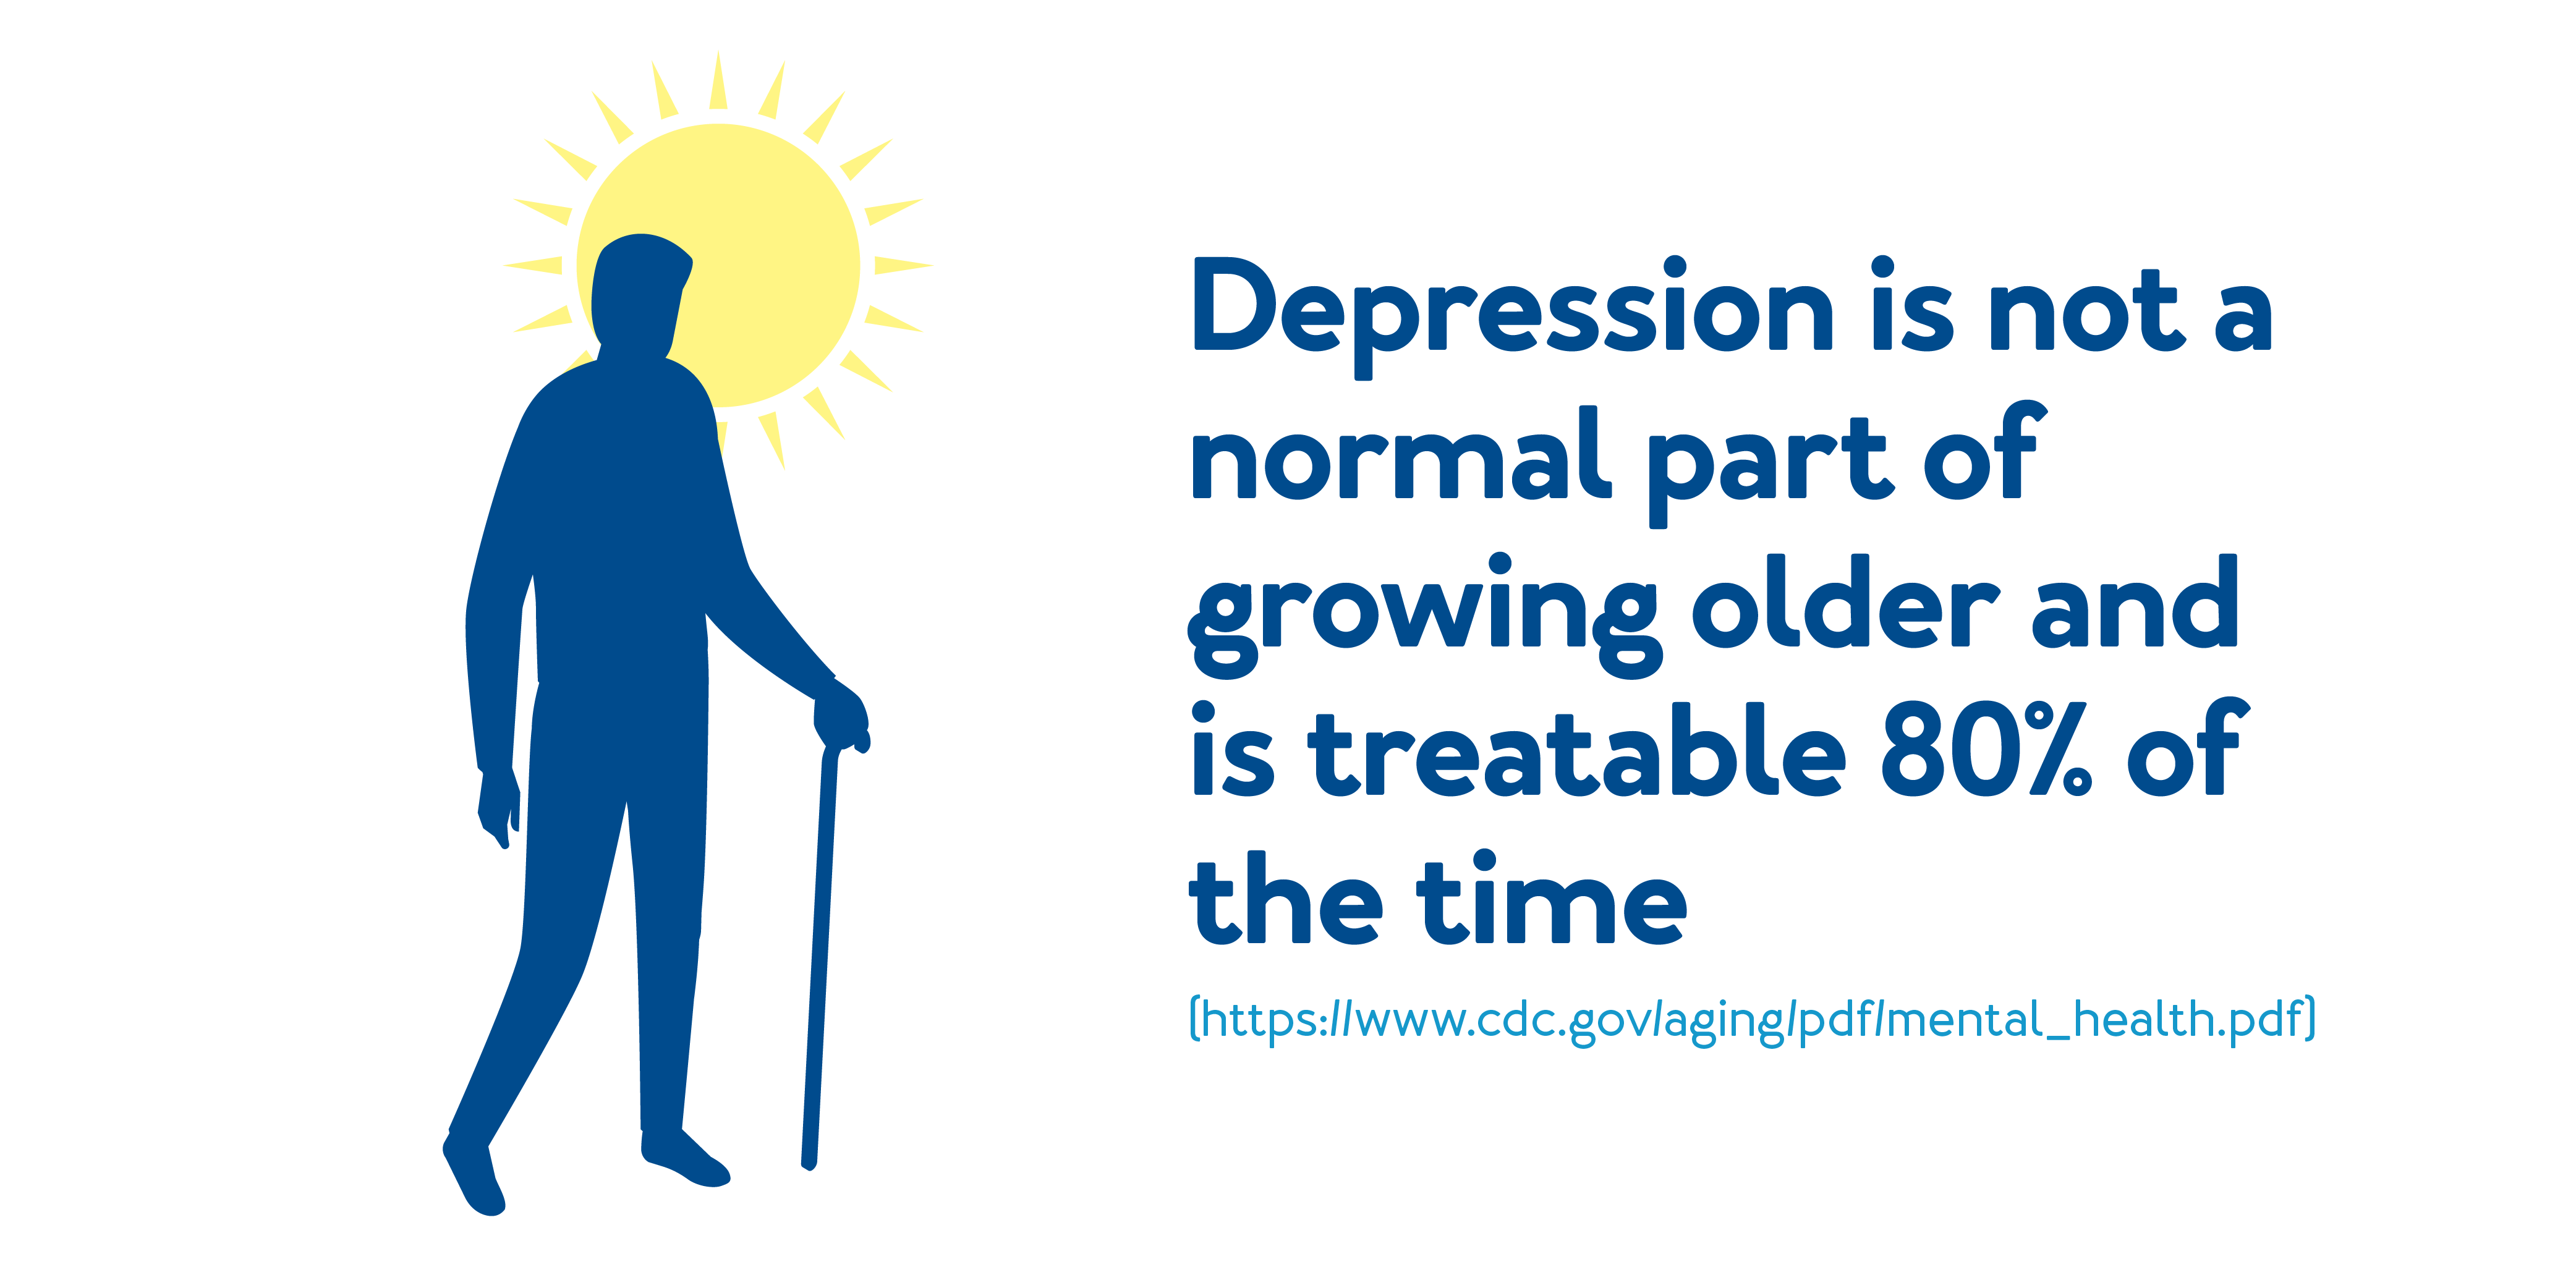 Depression is not a normal part of growing older and is treatable 80% of the time.